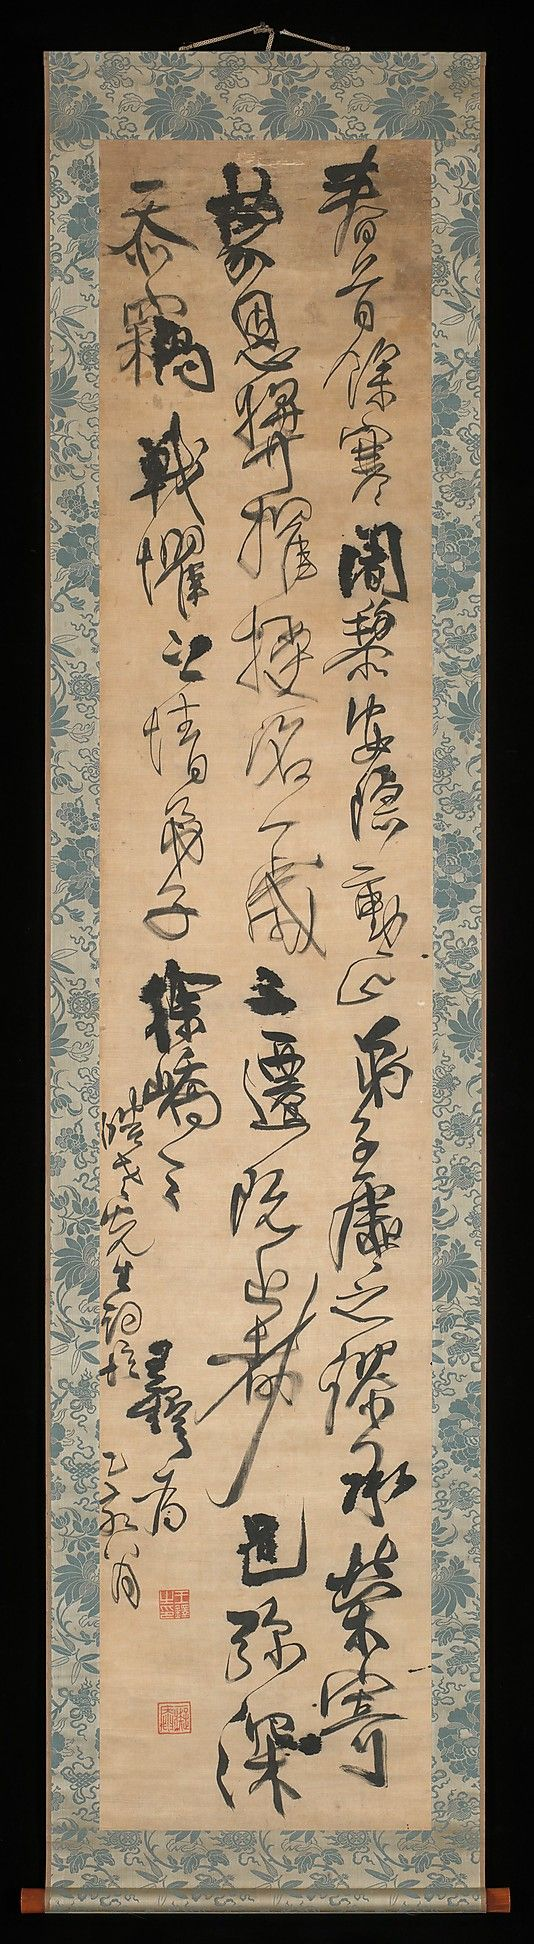 Best images about chinese calligraphy on pinterest